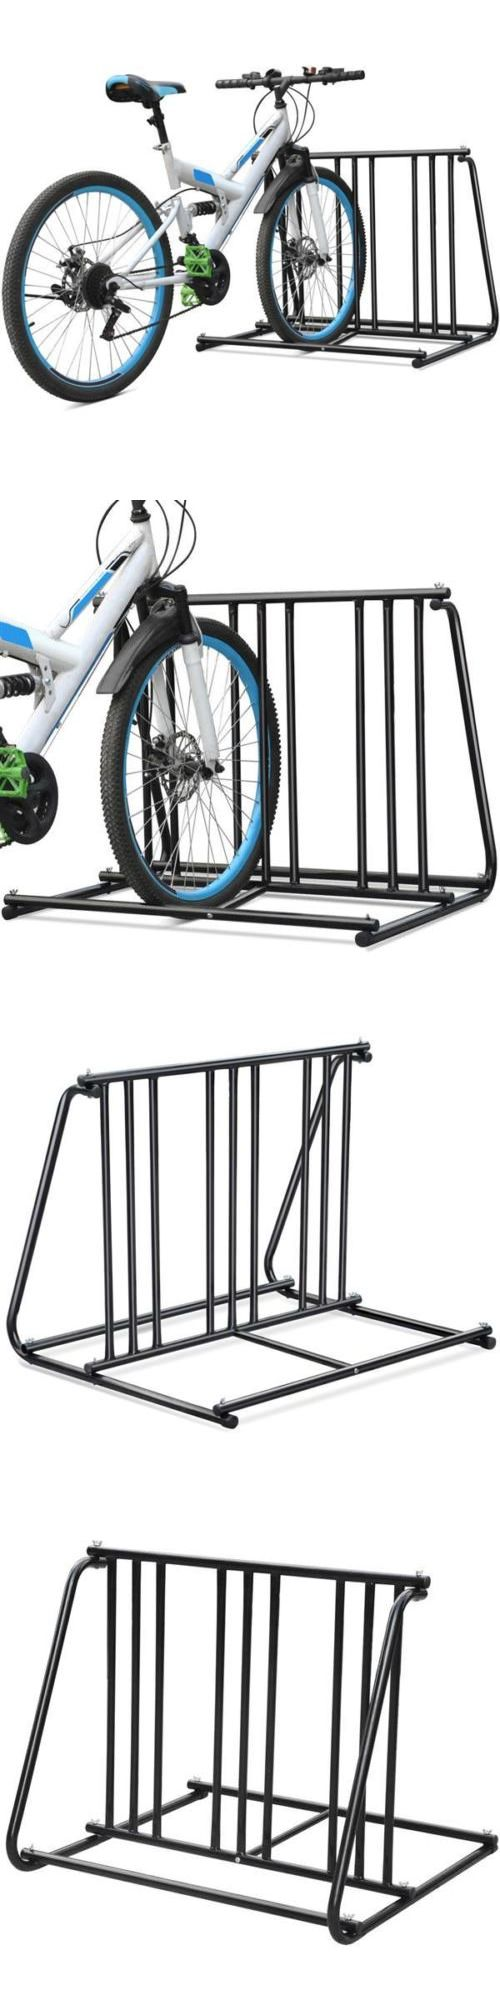 Bicycle Stands and Storage 158997: Black Bikes Floor Mount Bicycle Stands Park Storage Parking Rack Steel 1-6 -> BUY IT NOW ONLY: $33.99 on eBay!